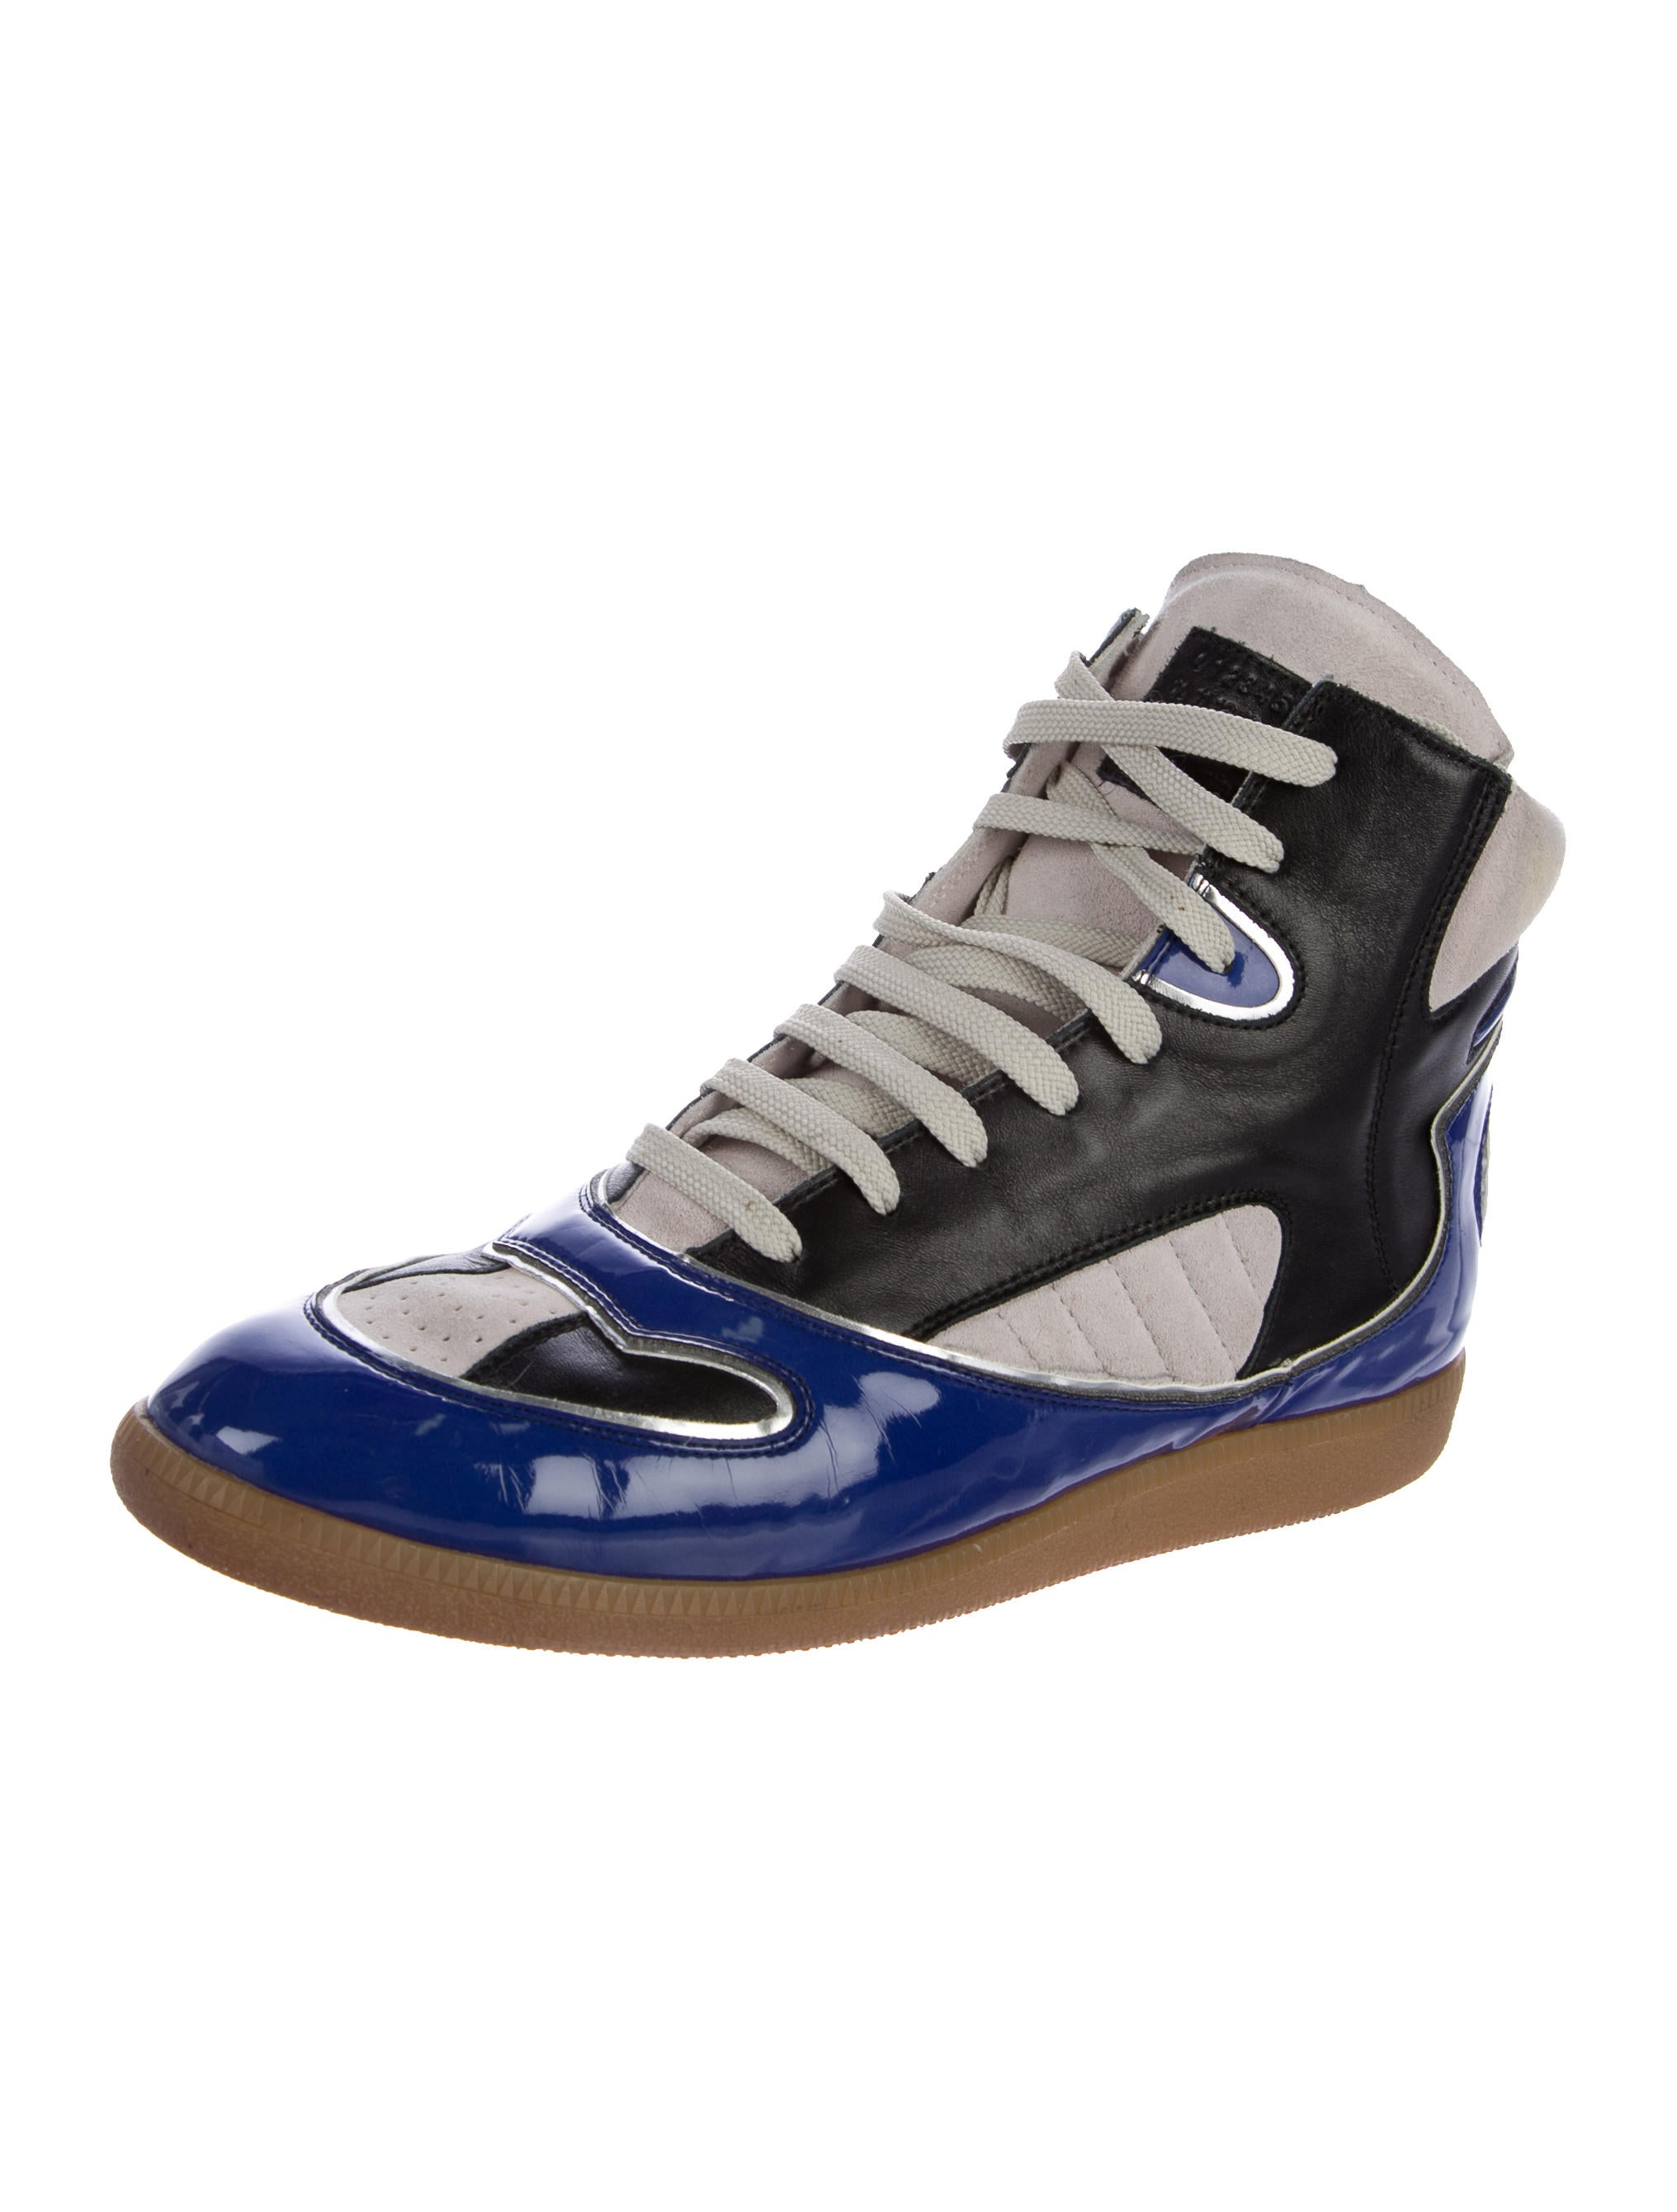 maison margiela leather high top sneakers shoes mai31477 the realreal. Black Bedroom Furniture Sets. Home Design Ideas